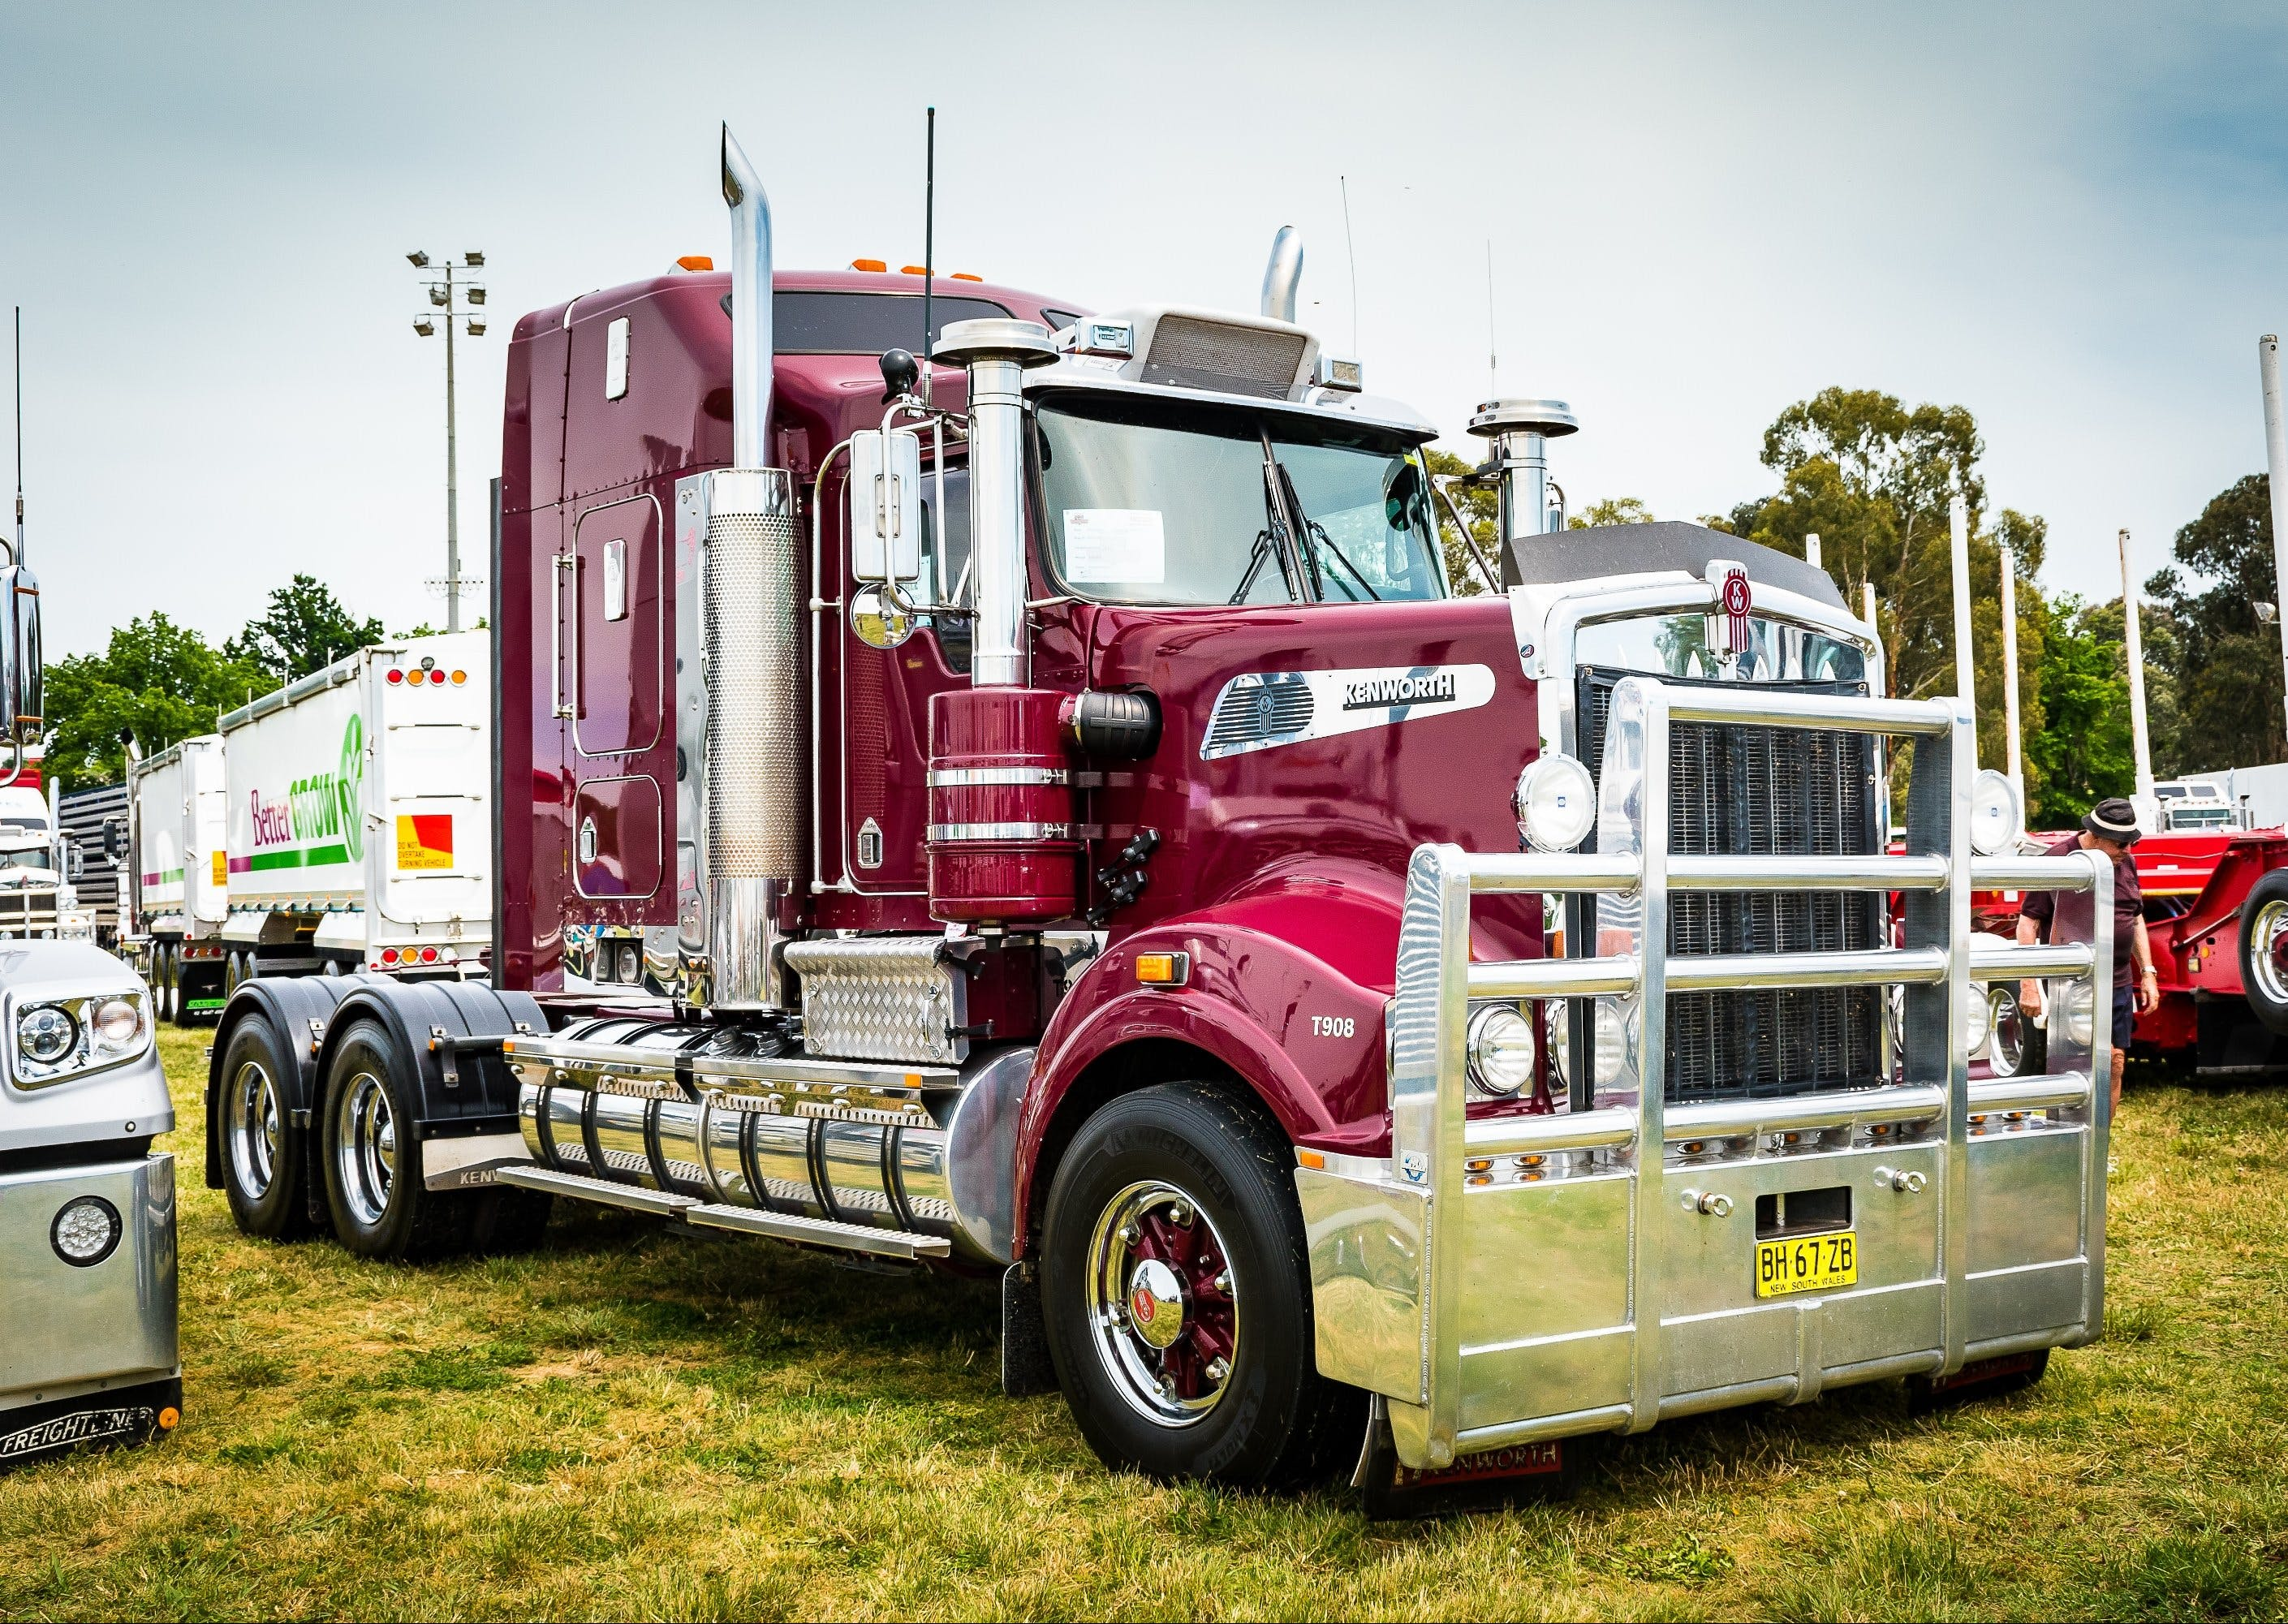 Dane Ballinger Memorial Truck Show - Accommodation Perth